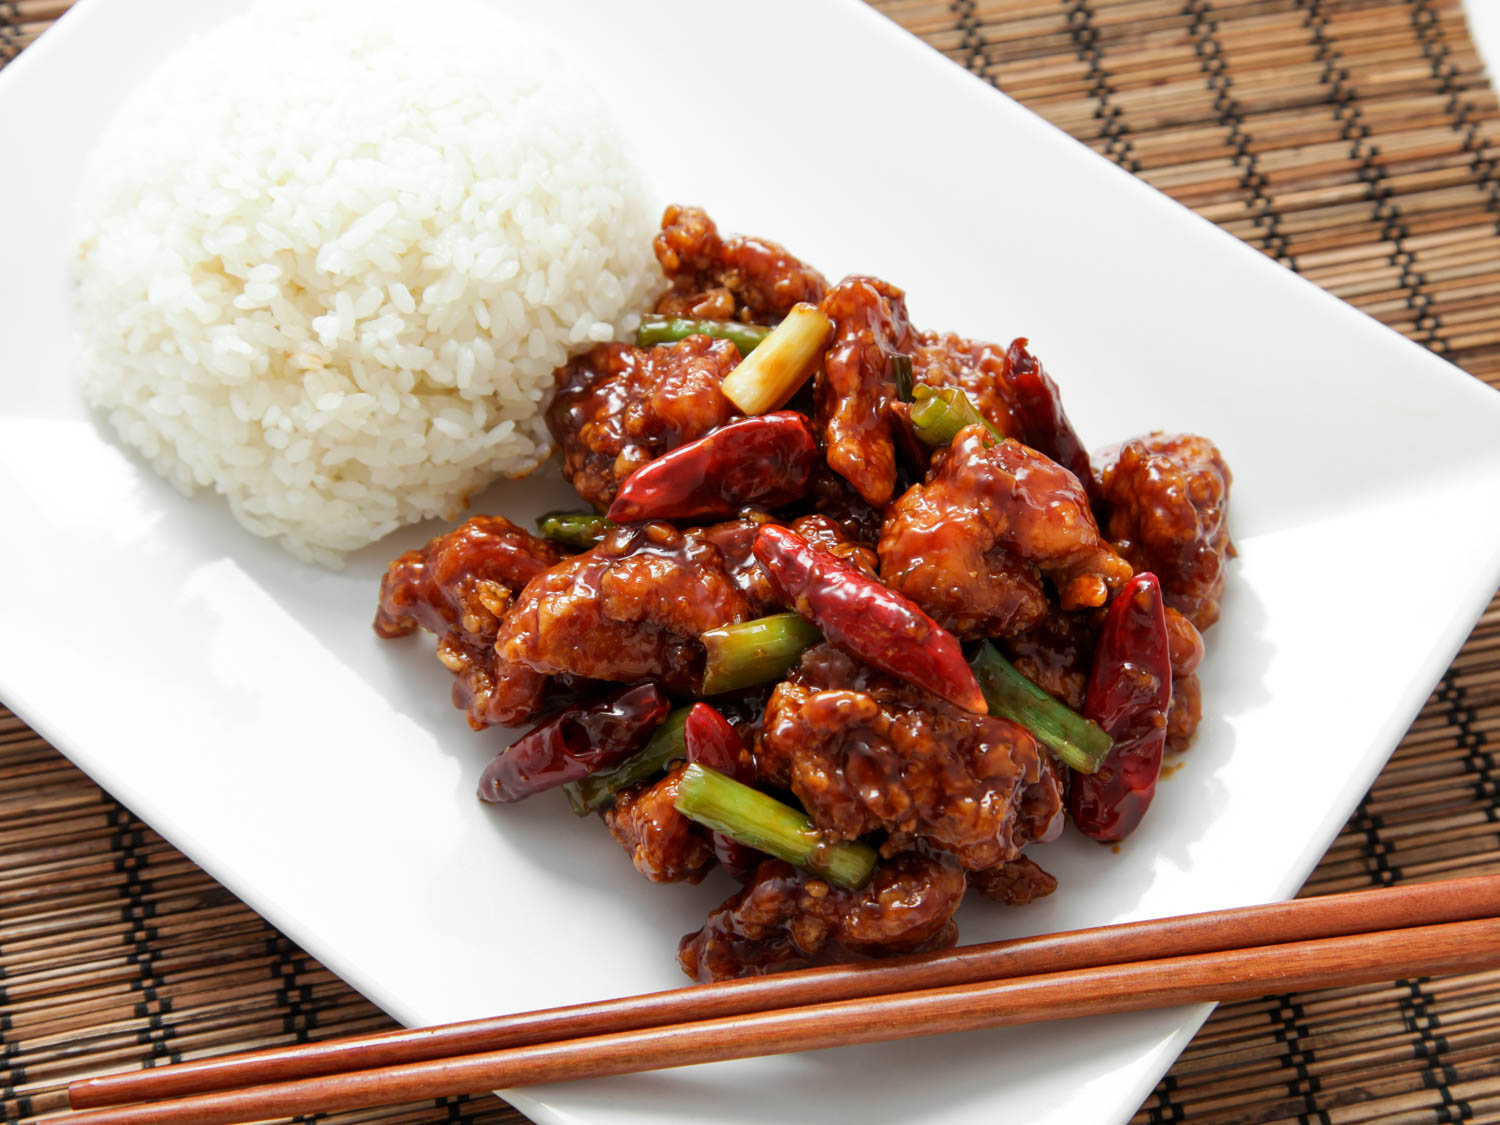 Thai Kitchen Order Online Maryland Heights Mo 63043 Thai Food Pickup Delivery